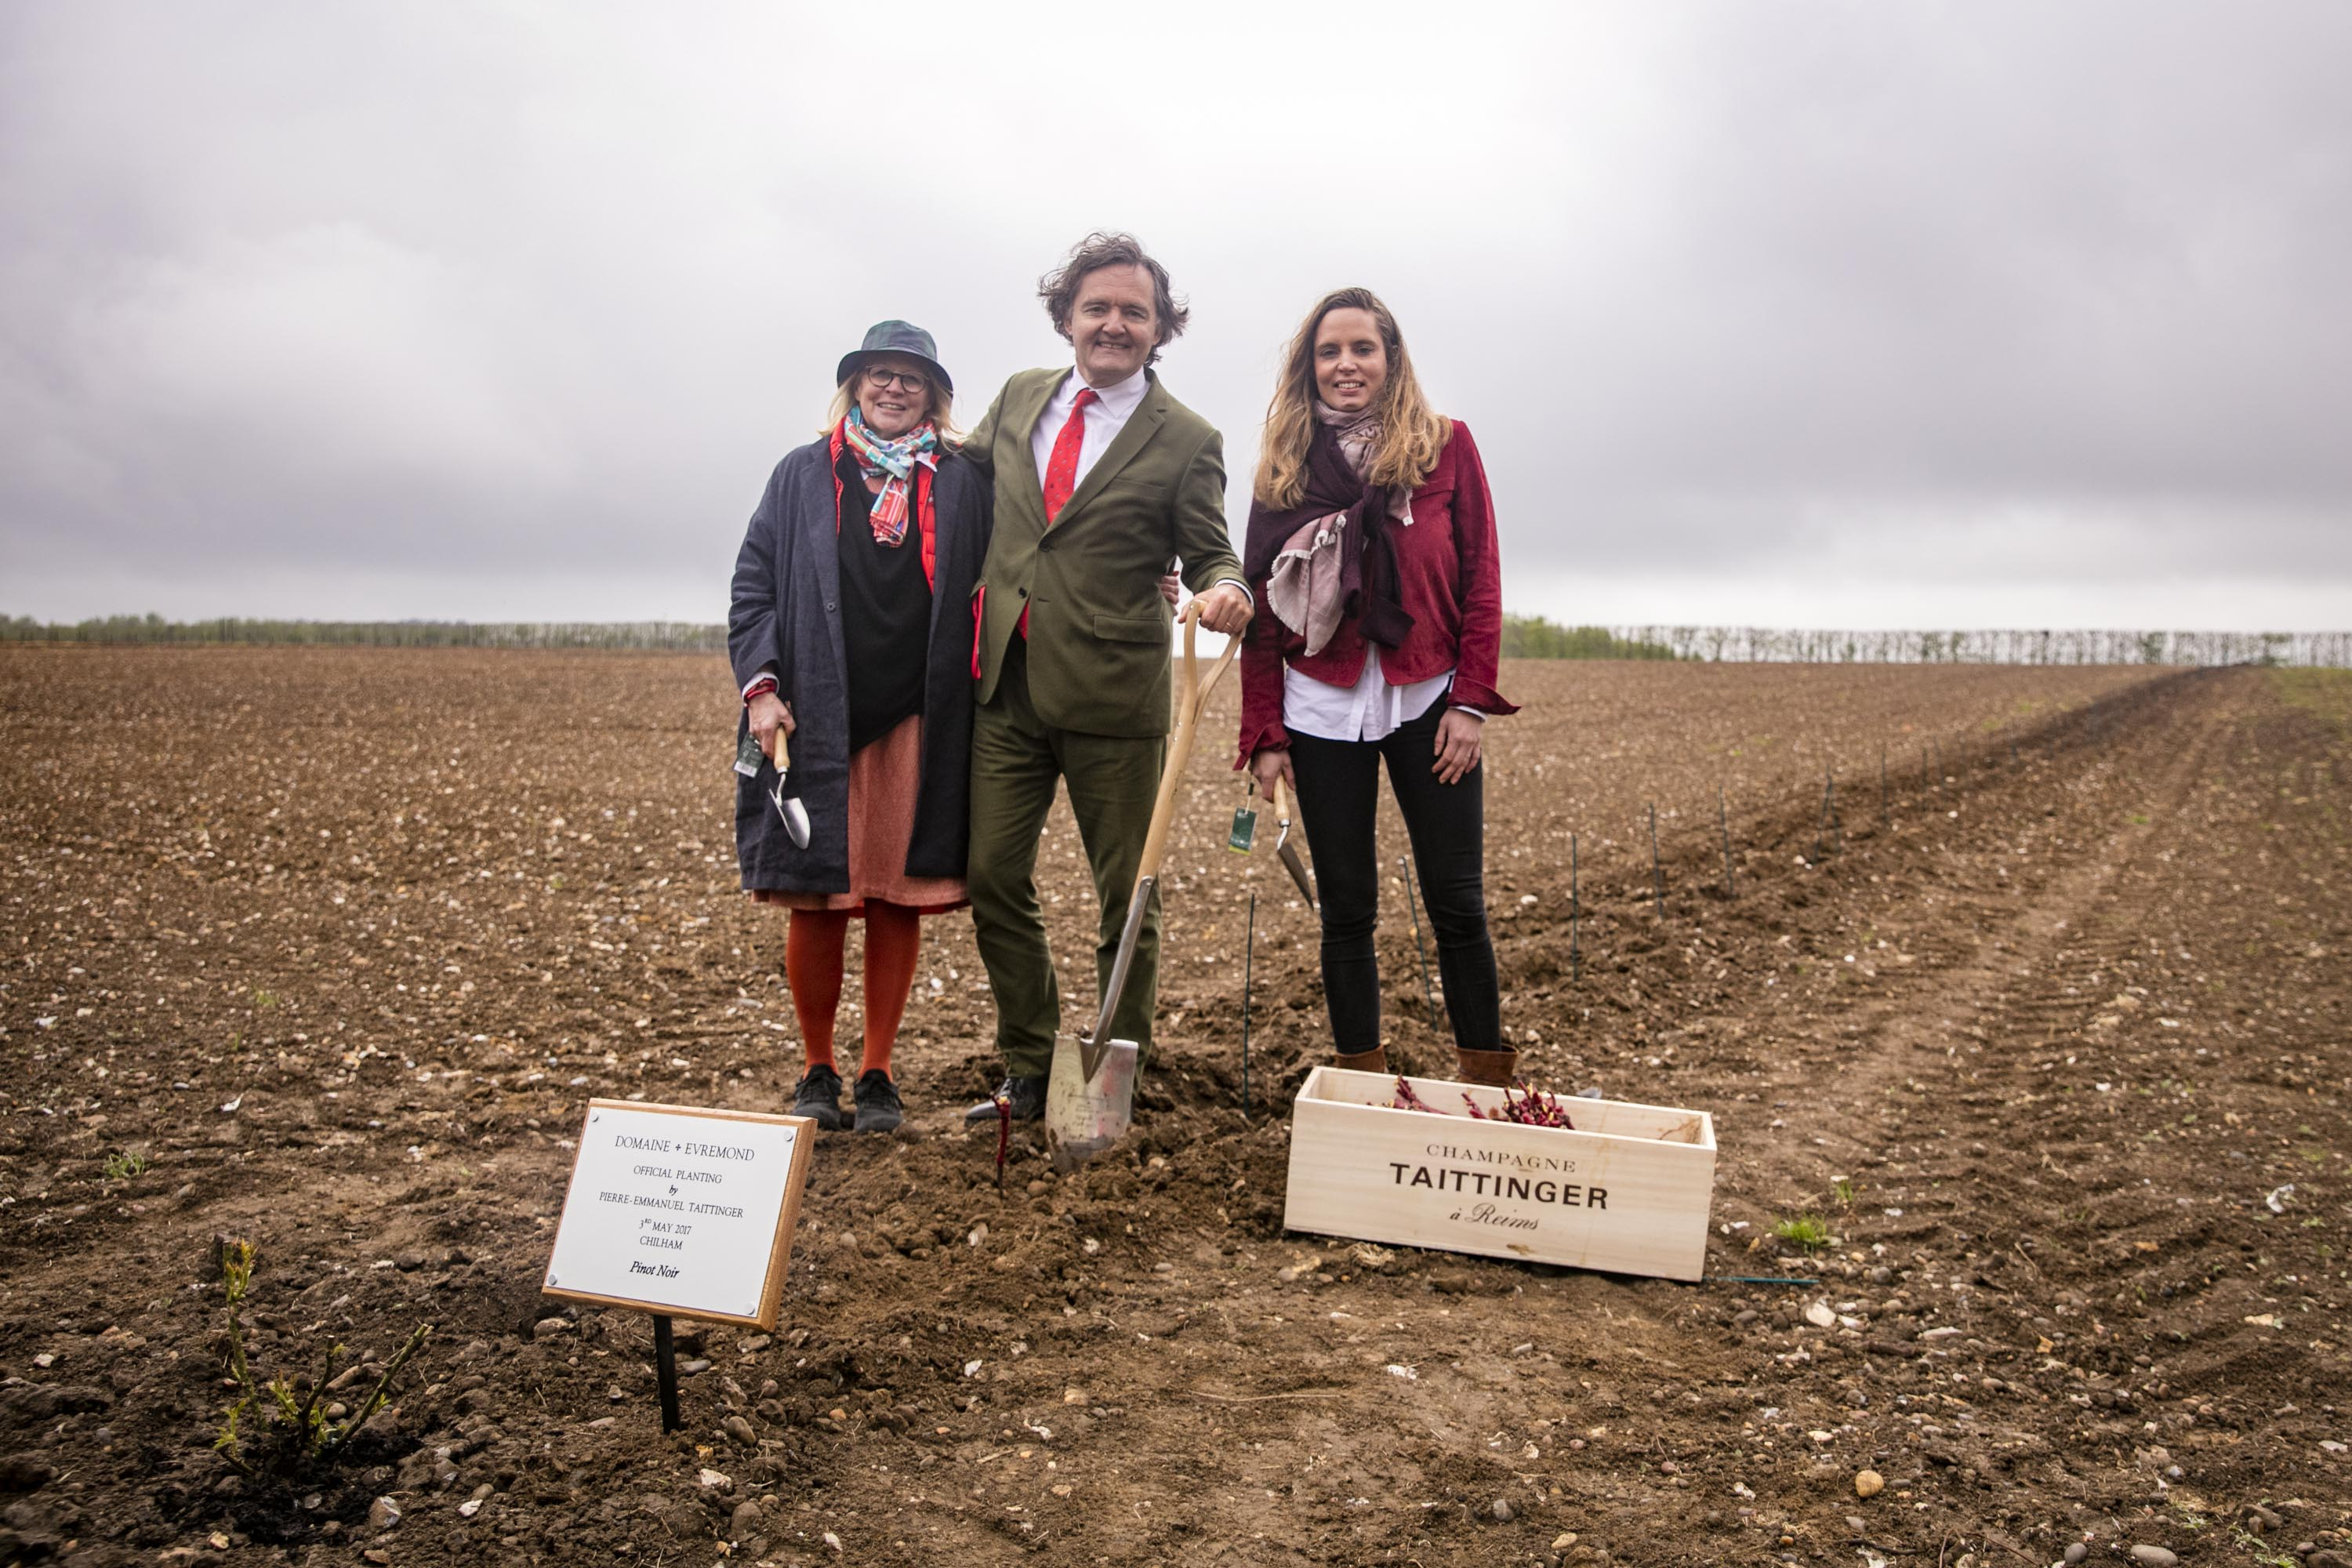 Historic moment in English Sparkling Wine making history as Pierre Emmanuel Taittinger, Claire Taittinger and Vitalie Taittinger plant the first vines at Domaine Evremond in Kent.